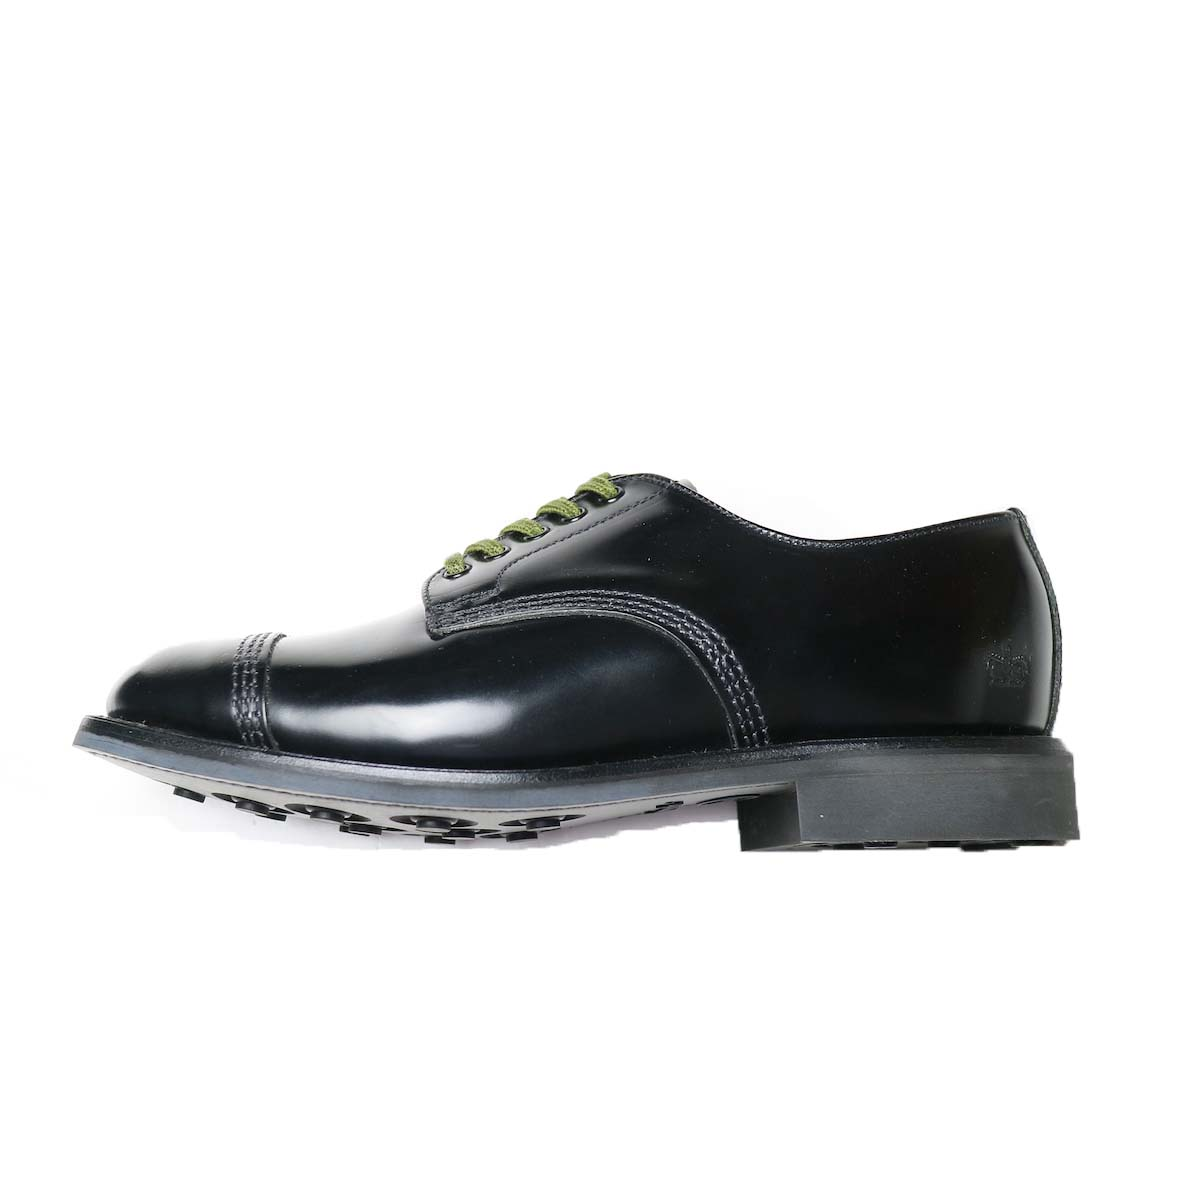 SANDERS / Military Derby Shoe 側面